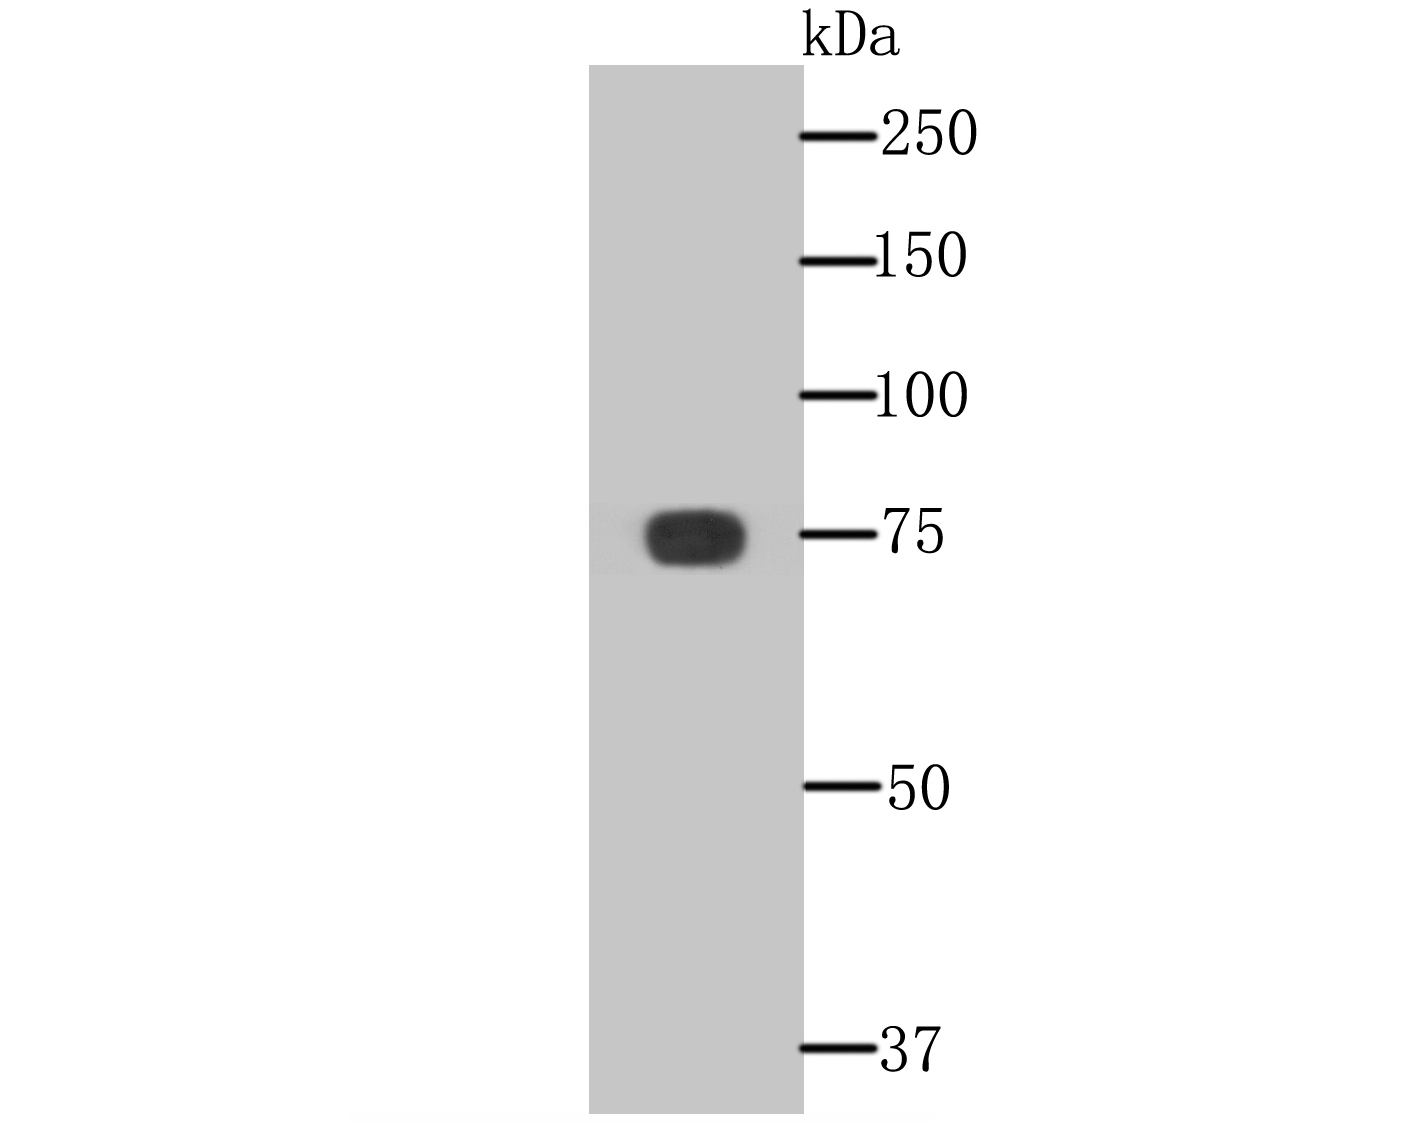 Western blot analysis of KHSRP on Jurkat cell lysate using anti-KHSRP antibody at 1/500 dilution.